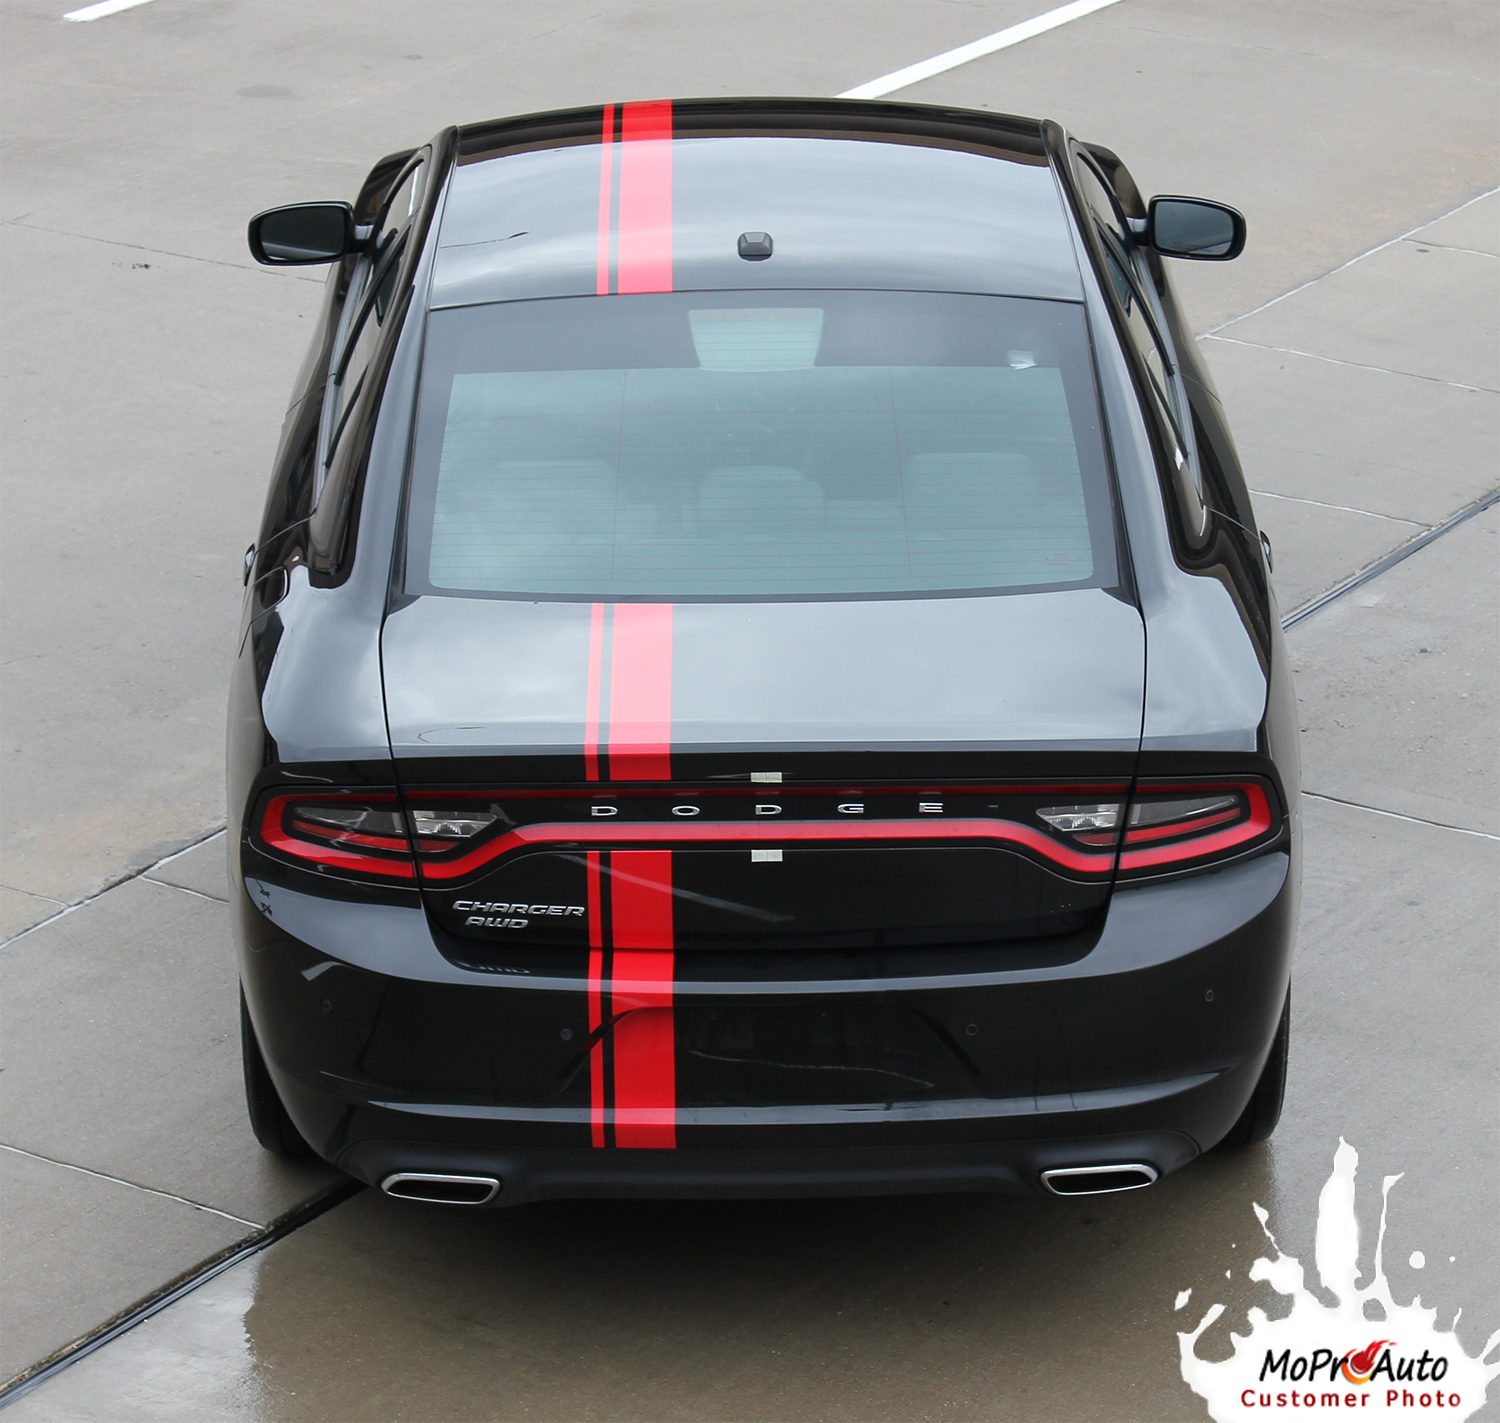 2015 EURO RALLY Dodge Charger E RALLY STRIPE Vinyl Graphics, Stripes and Decals Set